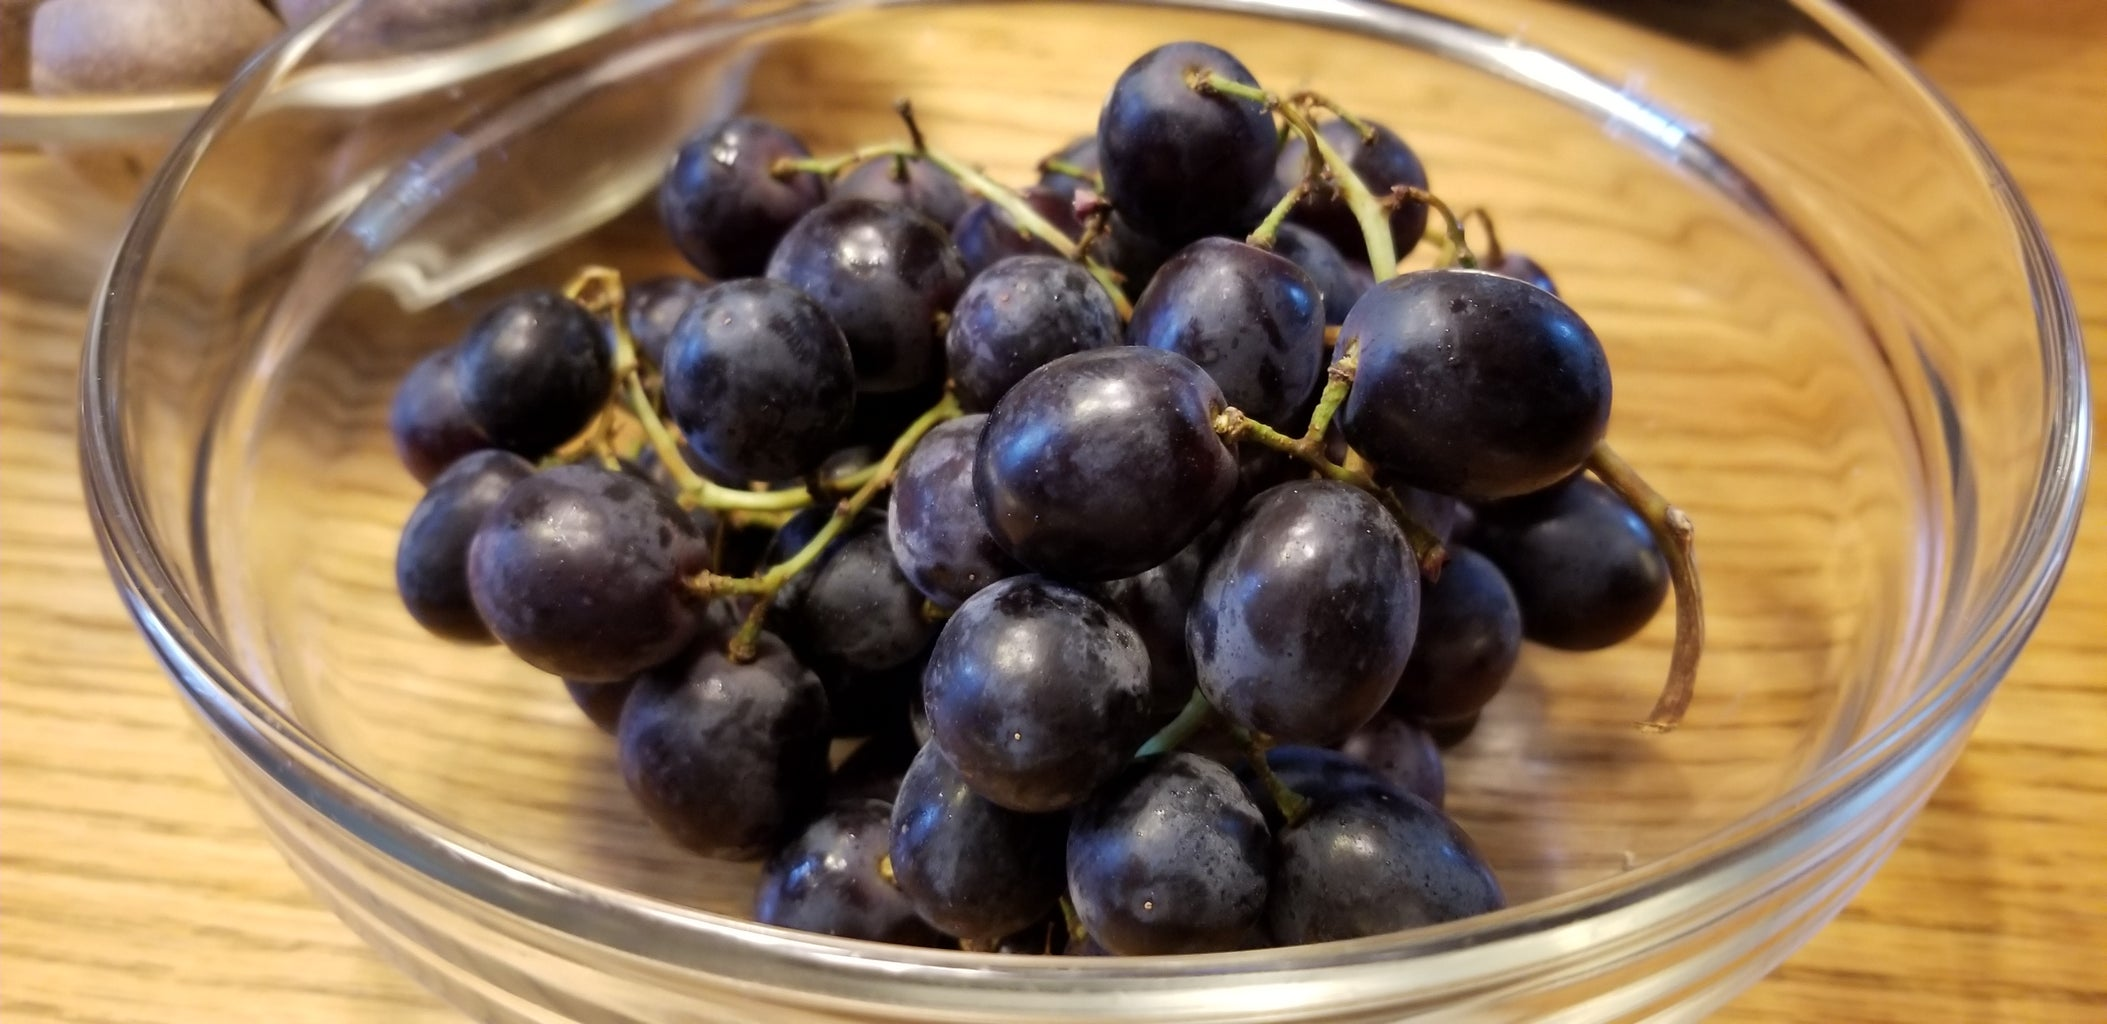 Pour a Glass of Violet Goodness and Grab Some Grapes